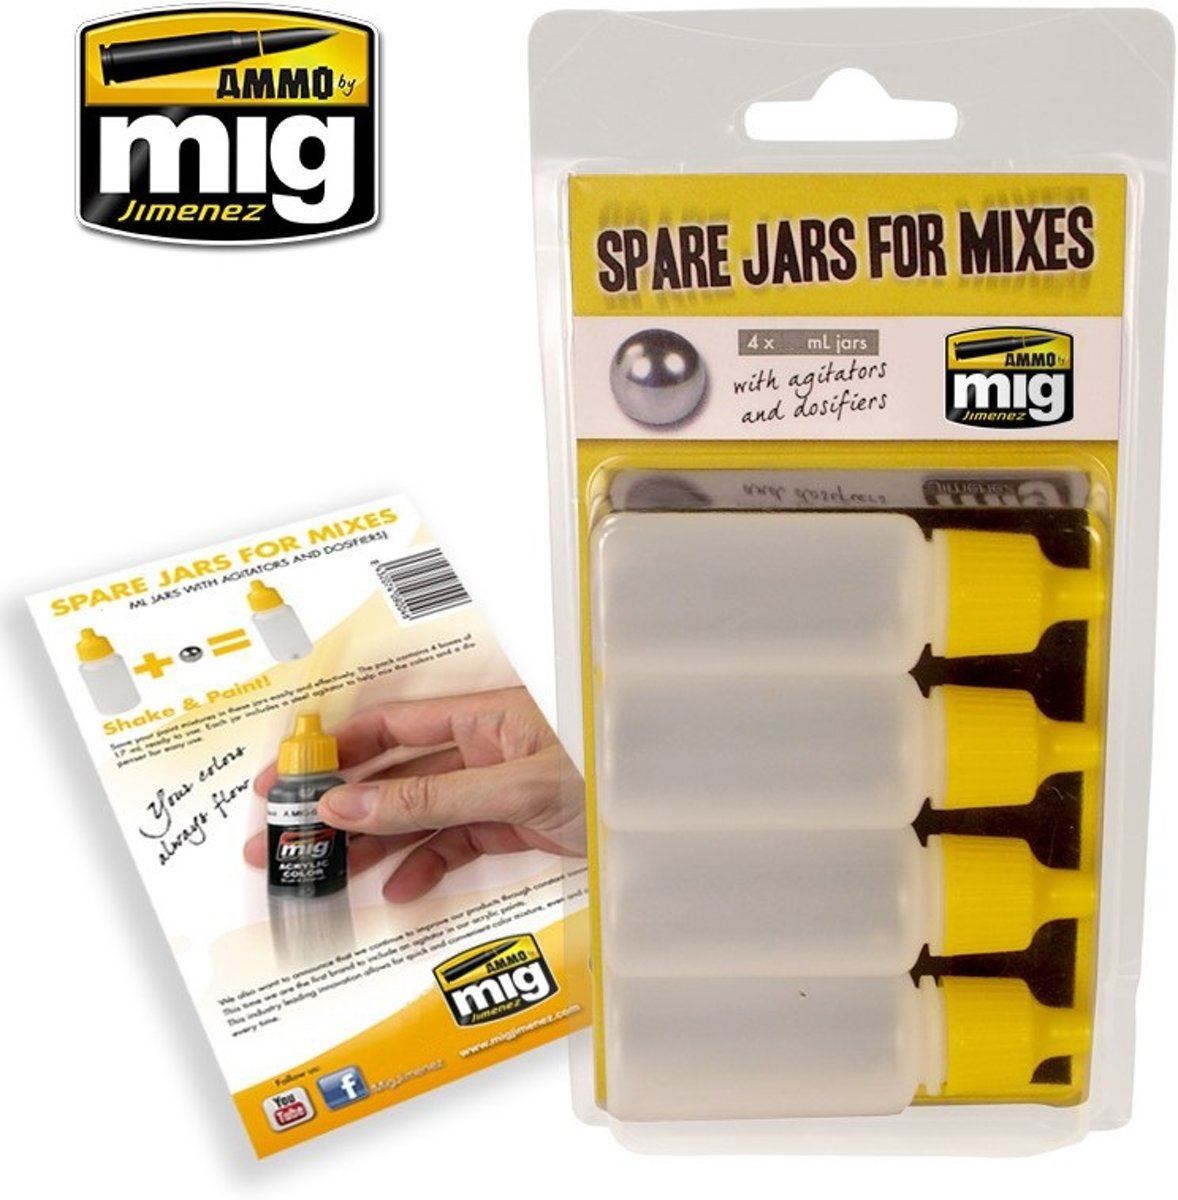 Mig - Spare Jars For Mixes (5 X 35 Ml Jars)